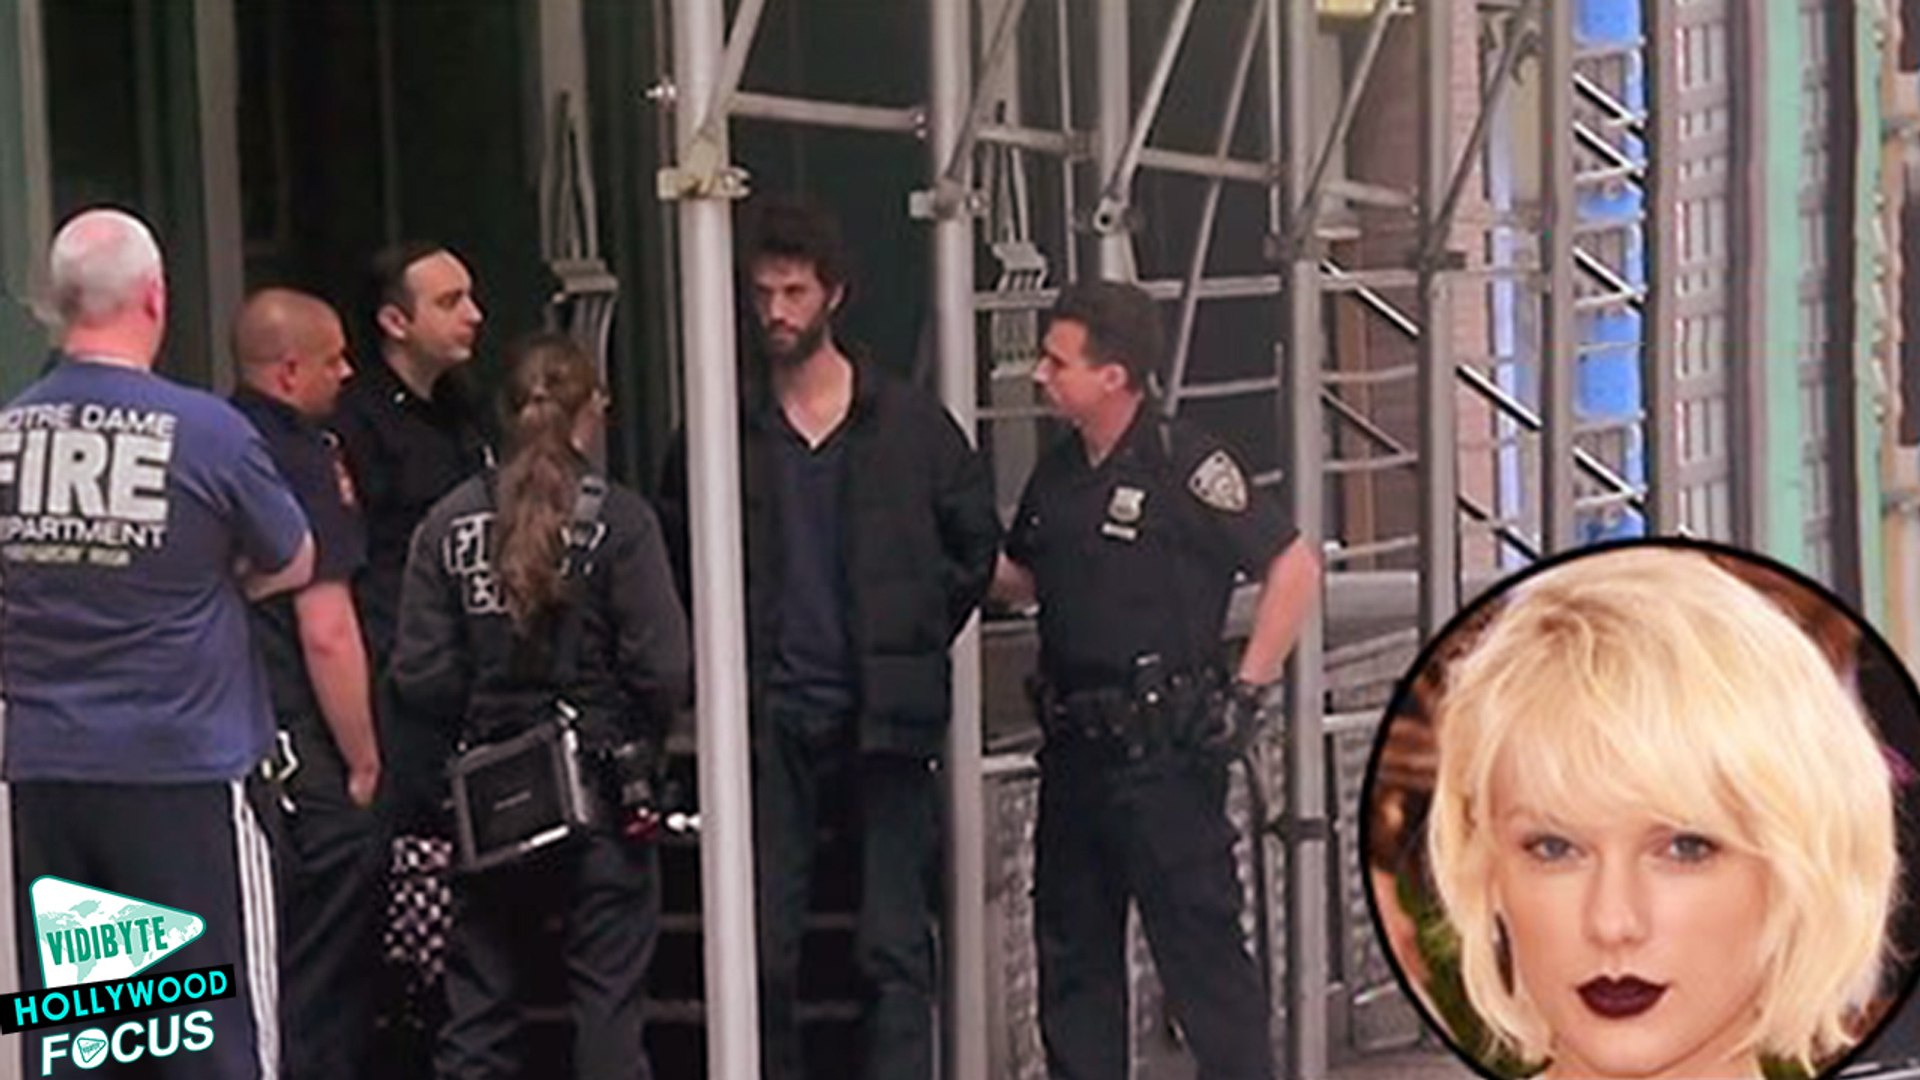 Taylor Swift Suspicious Man Arrested Outside Home